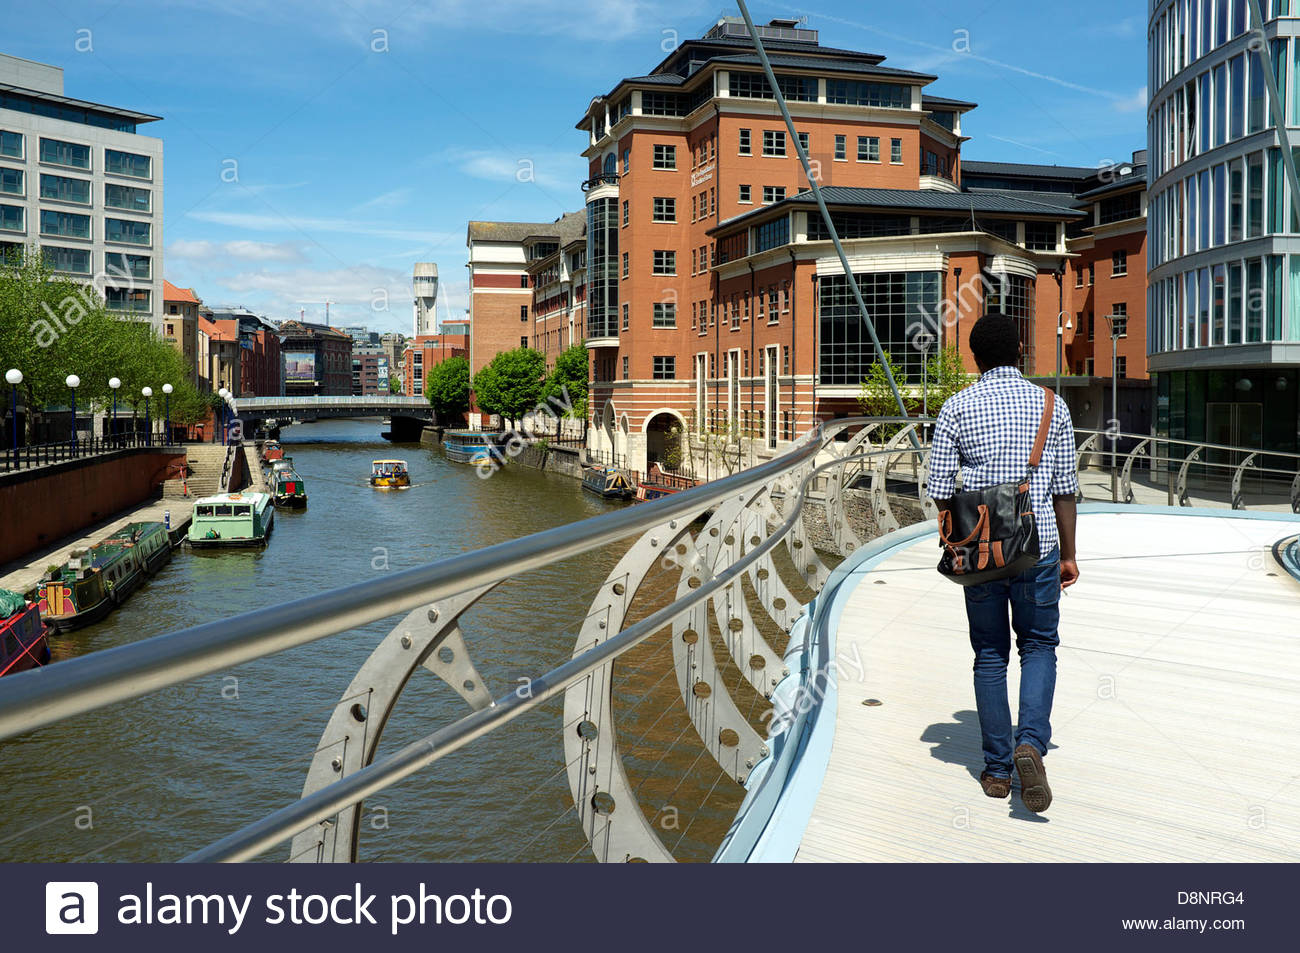 A view of the business area of Temple Quay and the River Avon in Bristol, UK. (the man is walking on Valentine's - Stock Image